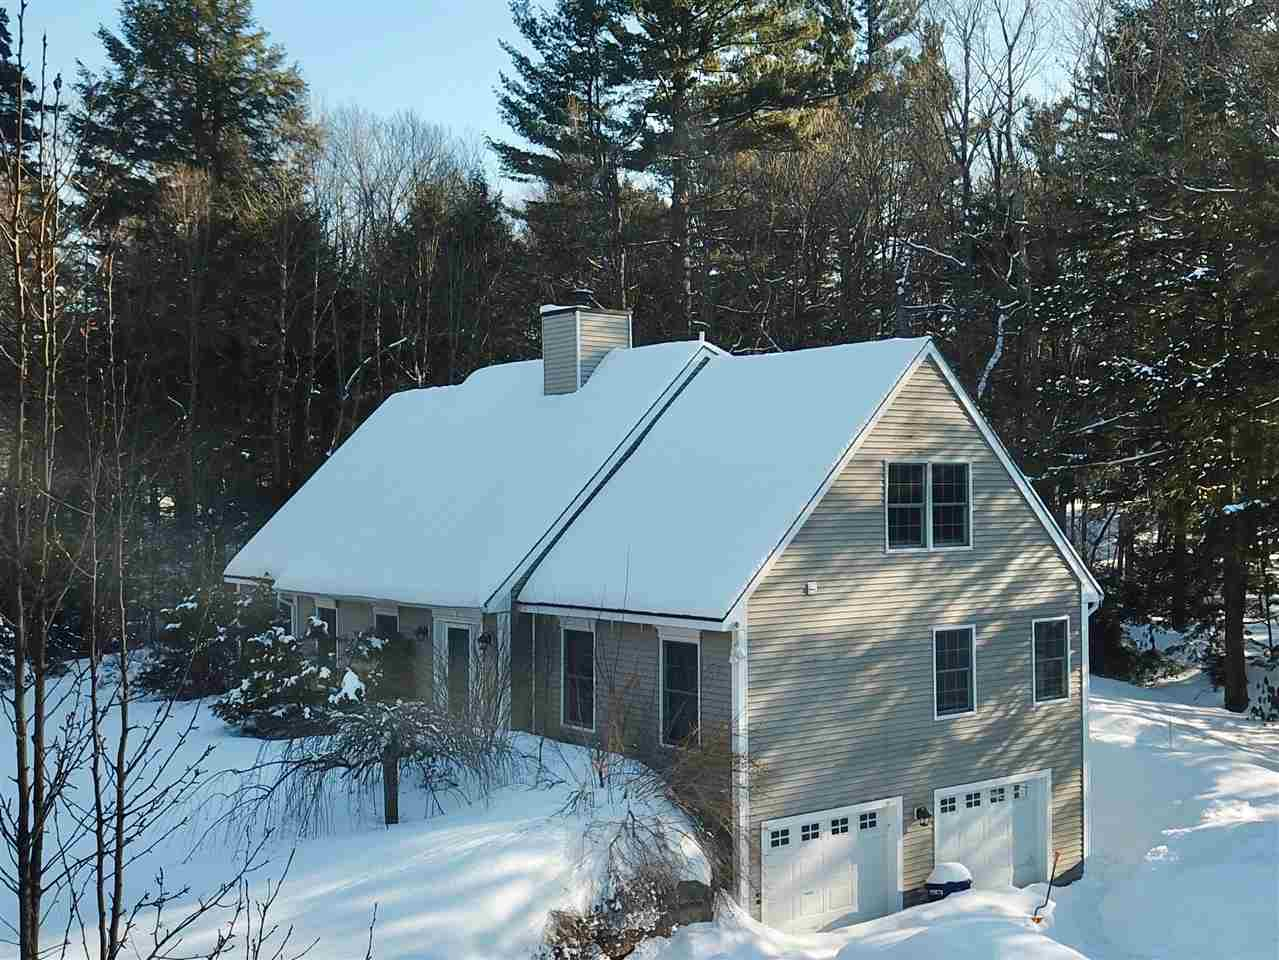 MLS 4727494: 101 Red Brook, New London NH